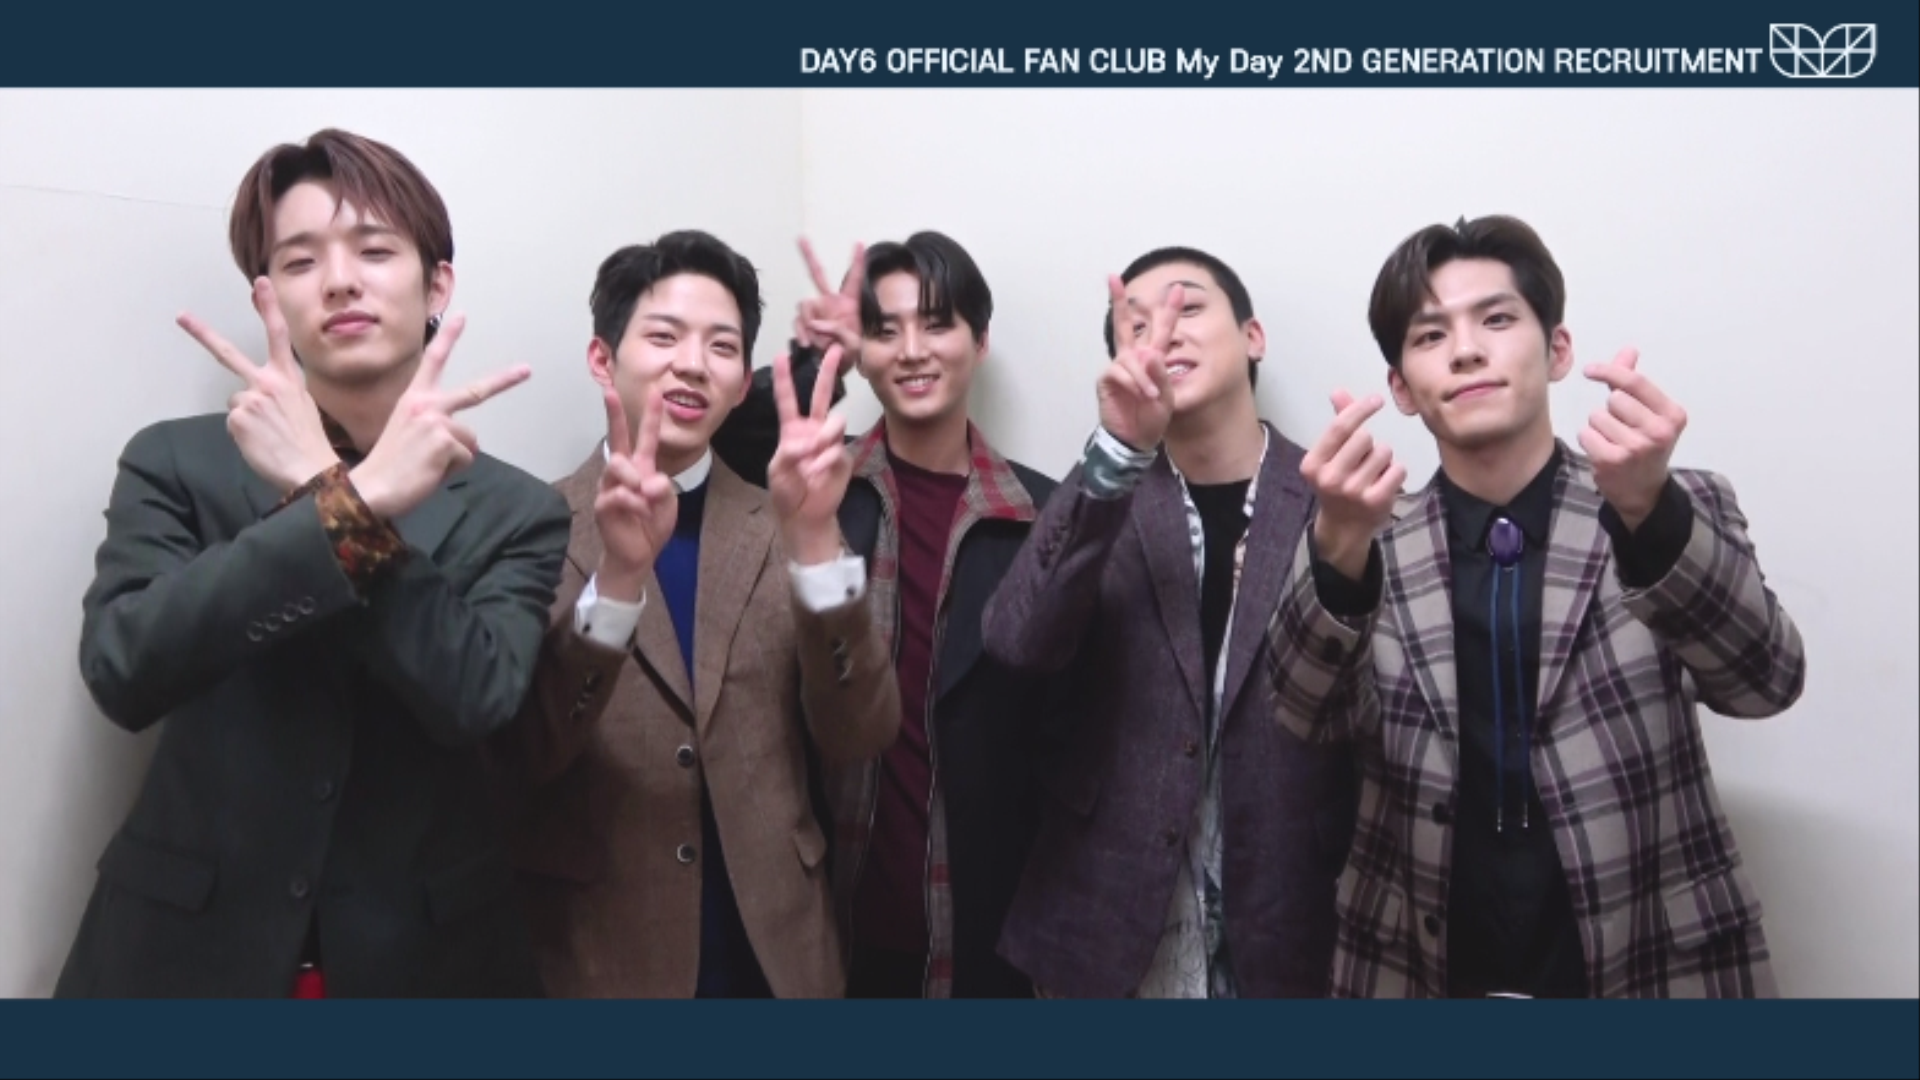 "DAY6 OFFICIAL FAN CLUB ""My Day"" 2ND GENERATION INVITATION VIDEO"